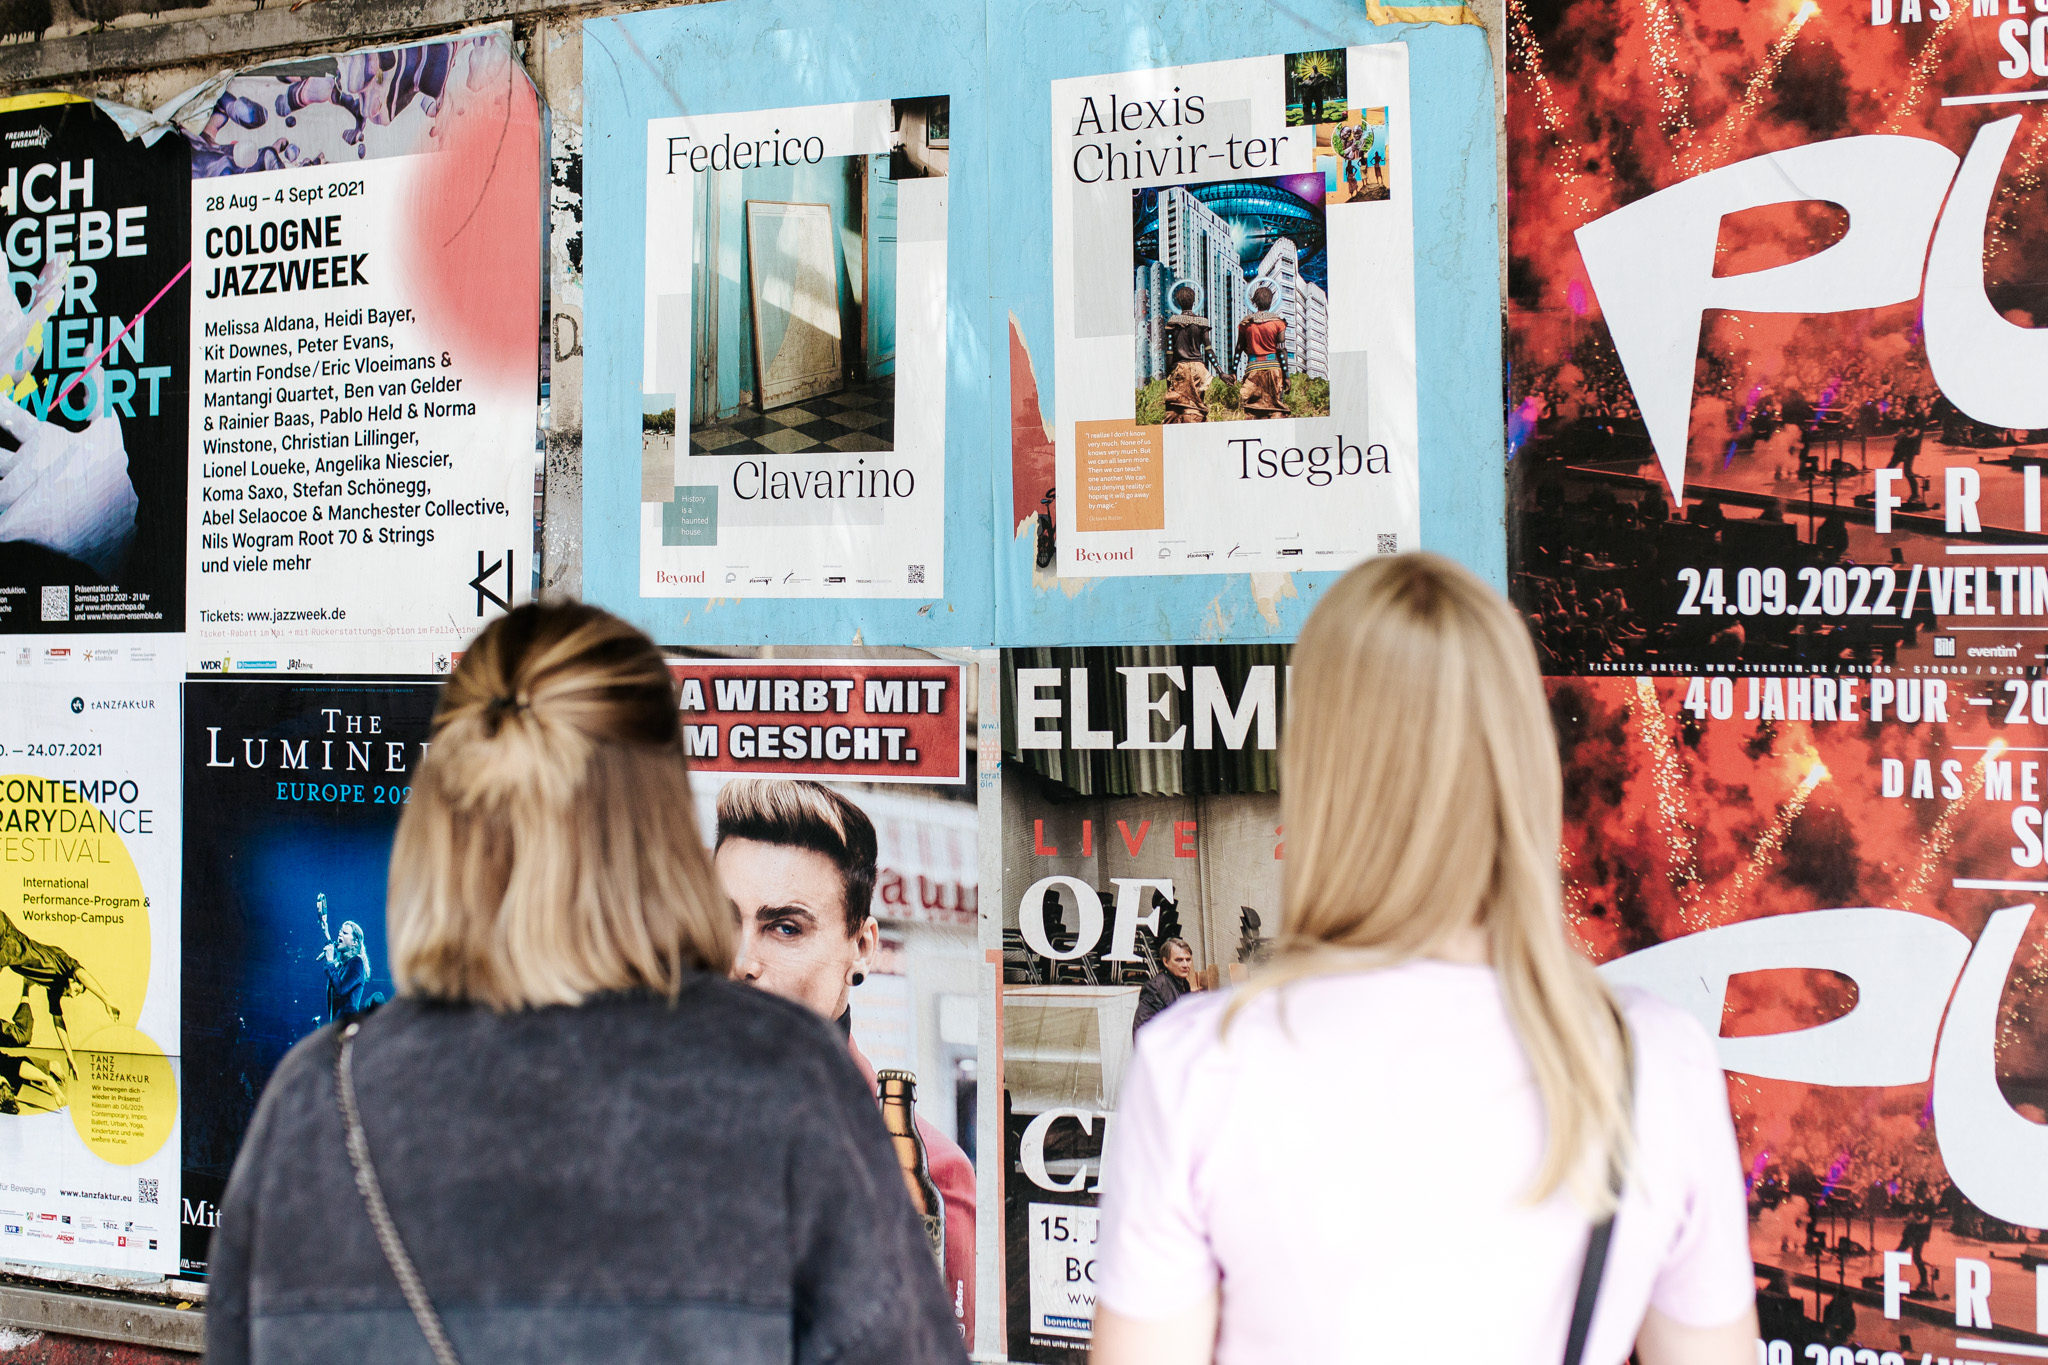 Close up, Beyond Poster in Cologne, Photo by Lea May